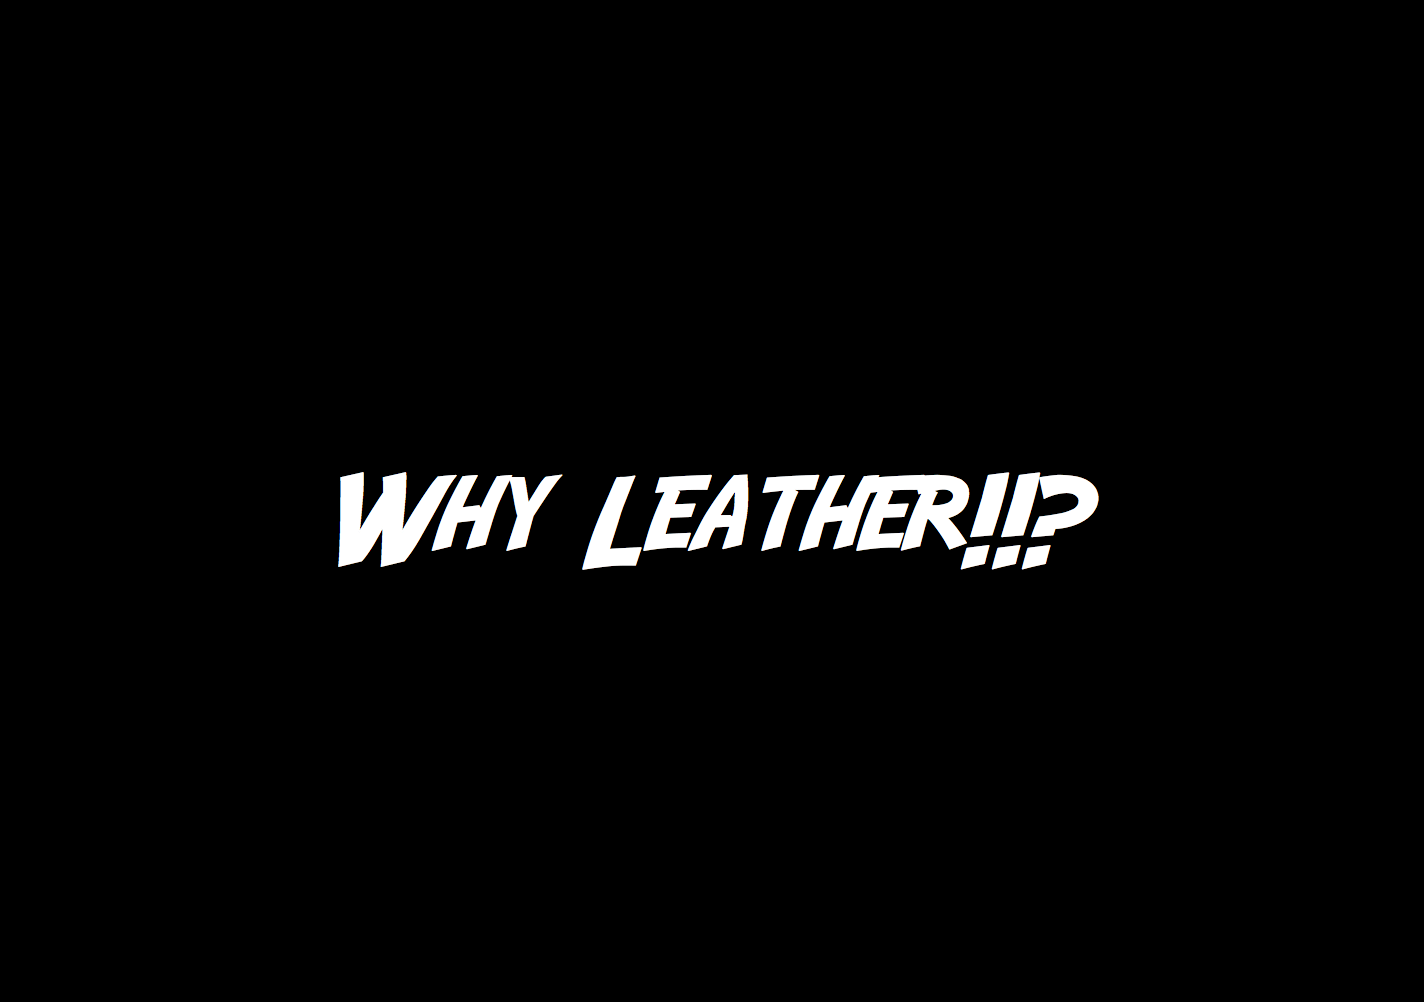 Why Leather